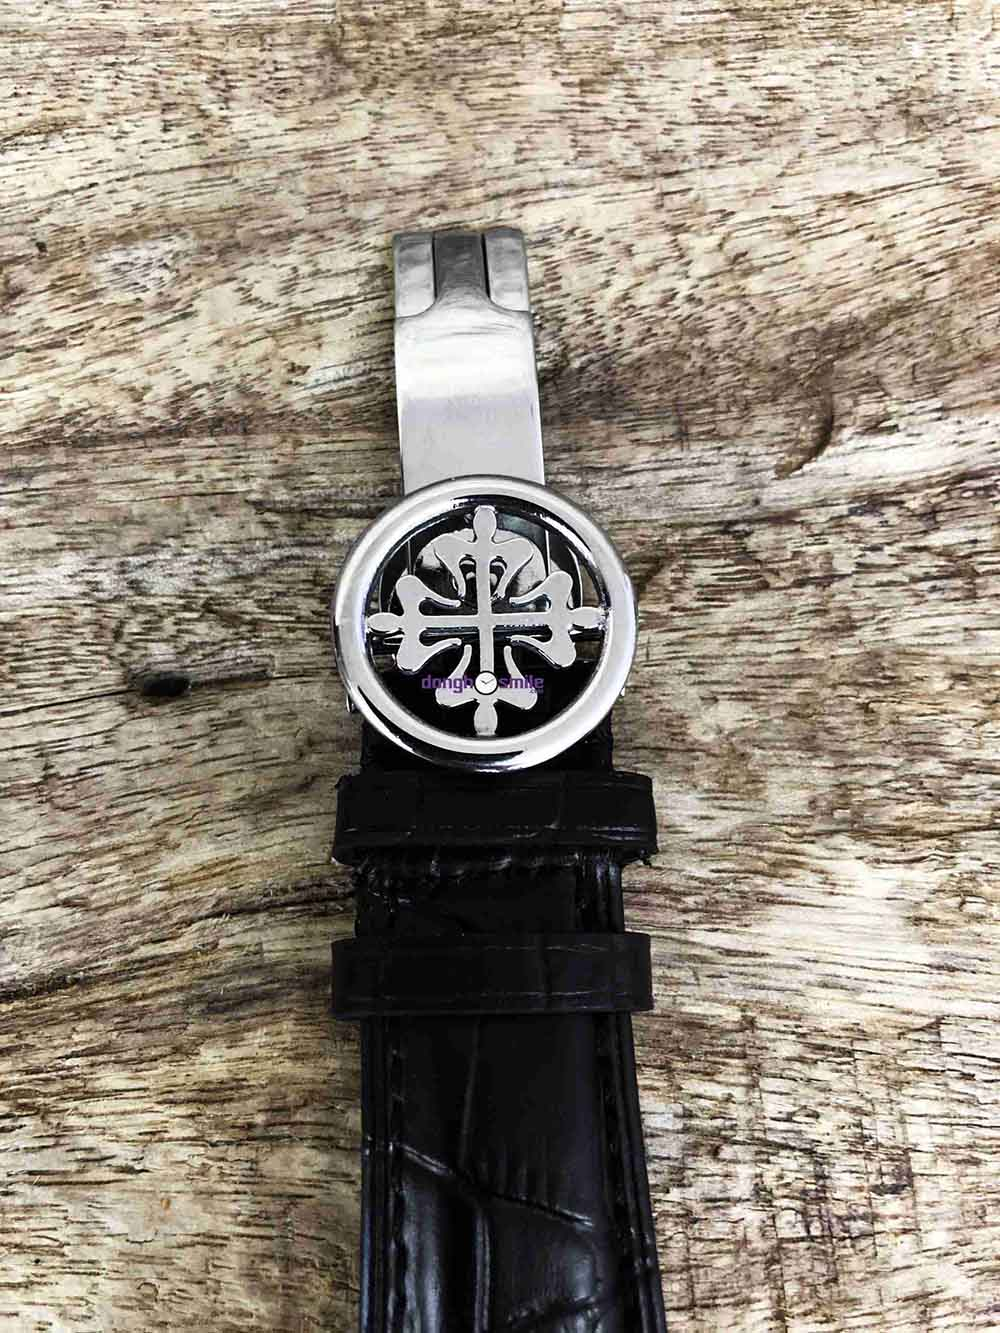 dong-ho-patek-philippe-geneve-gia-tot-a-pp114-10